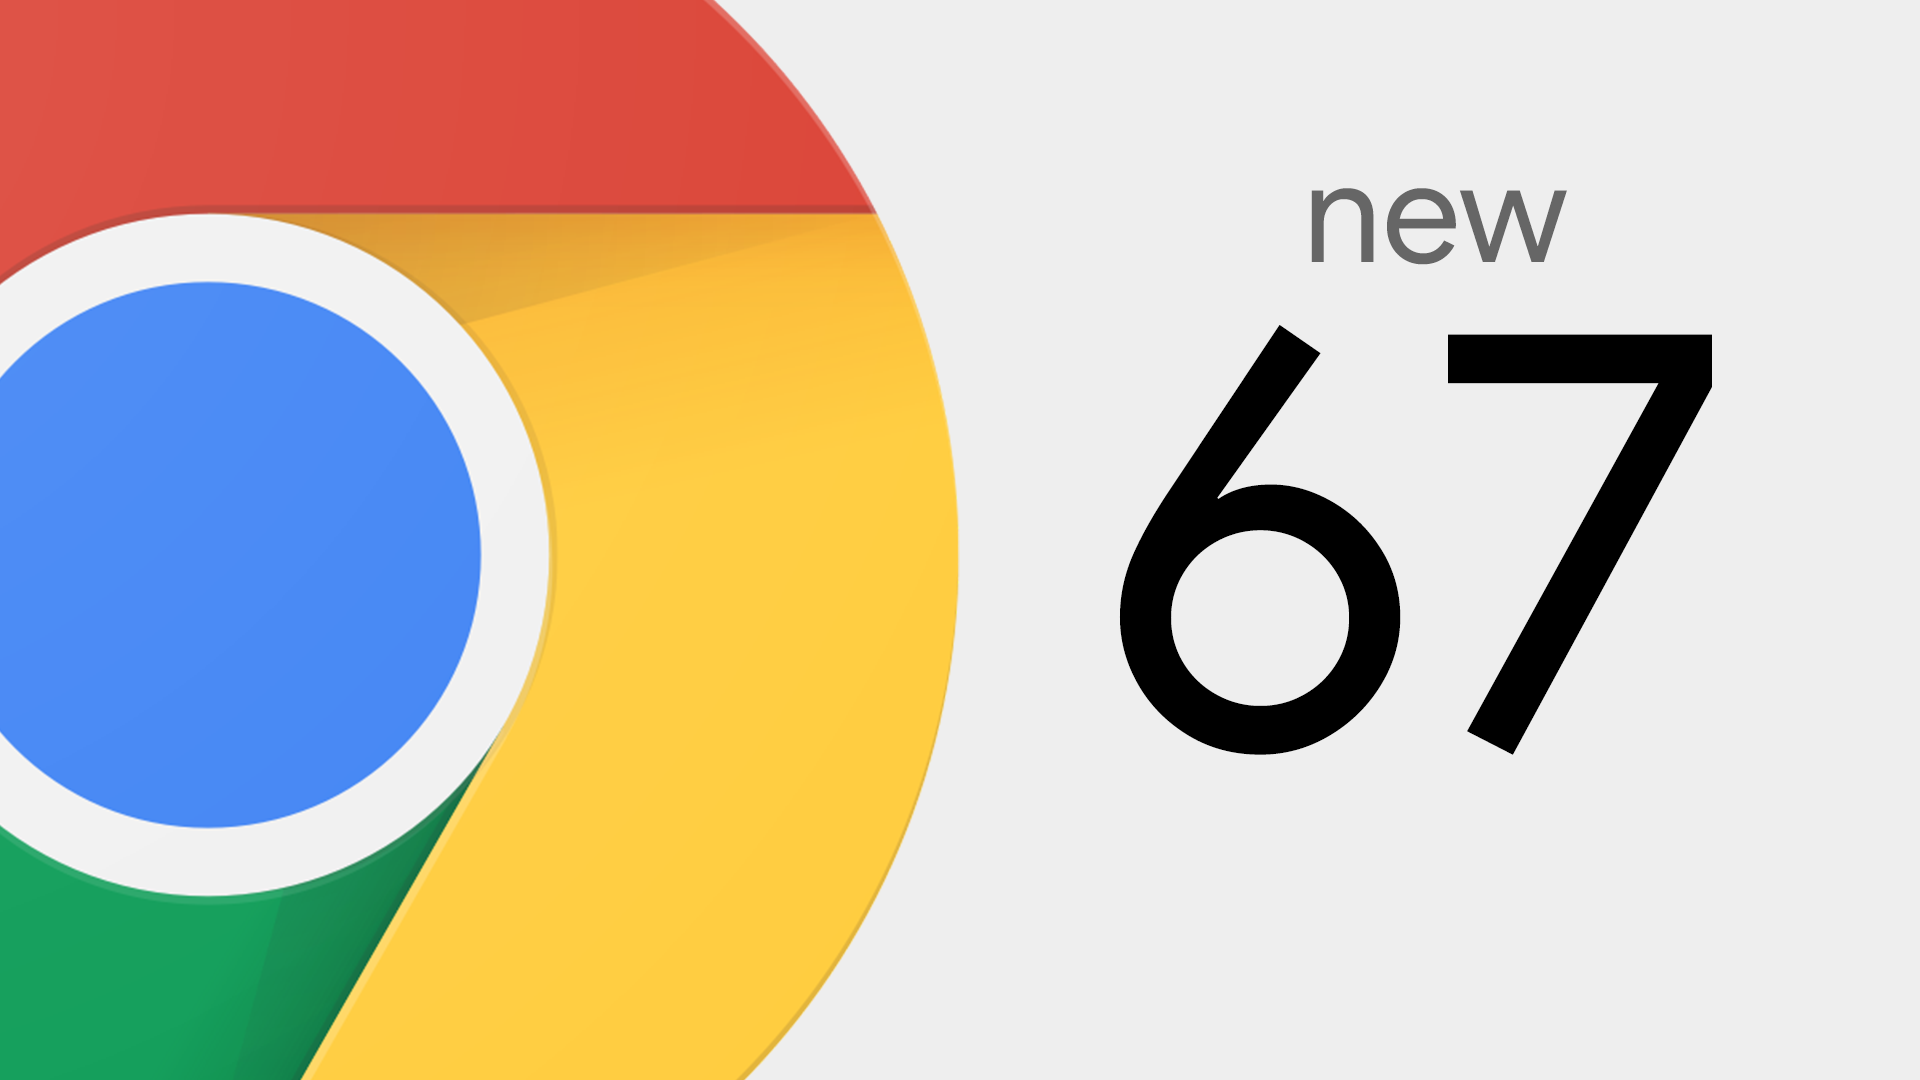 New in Chrome 67